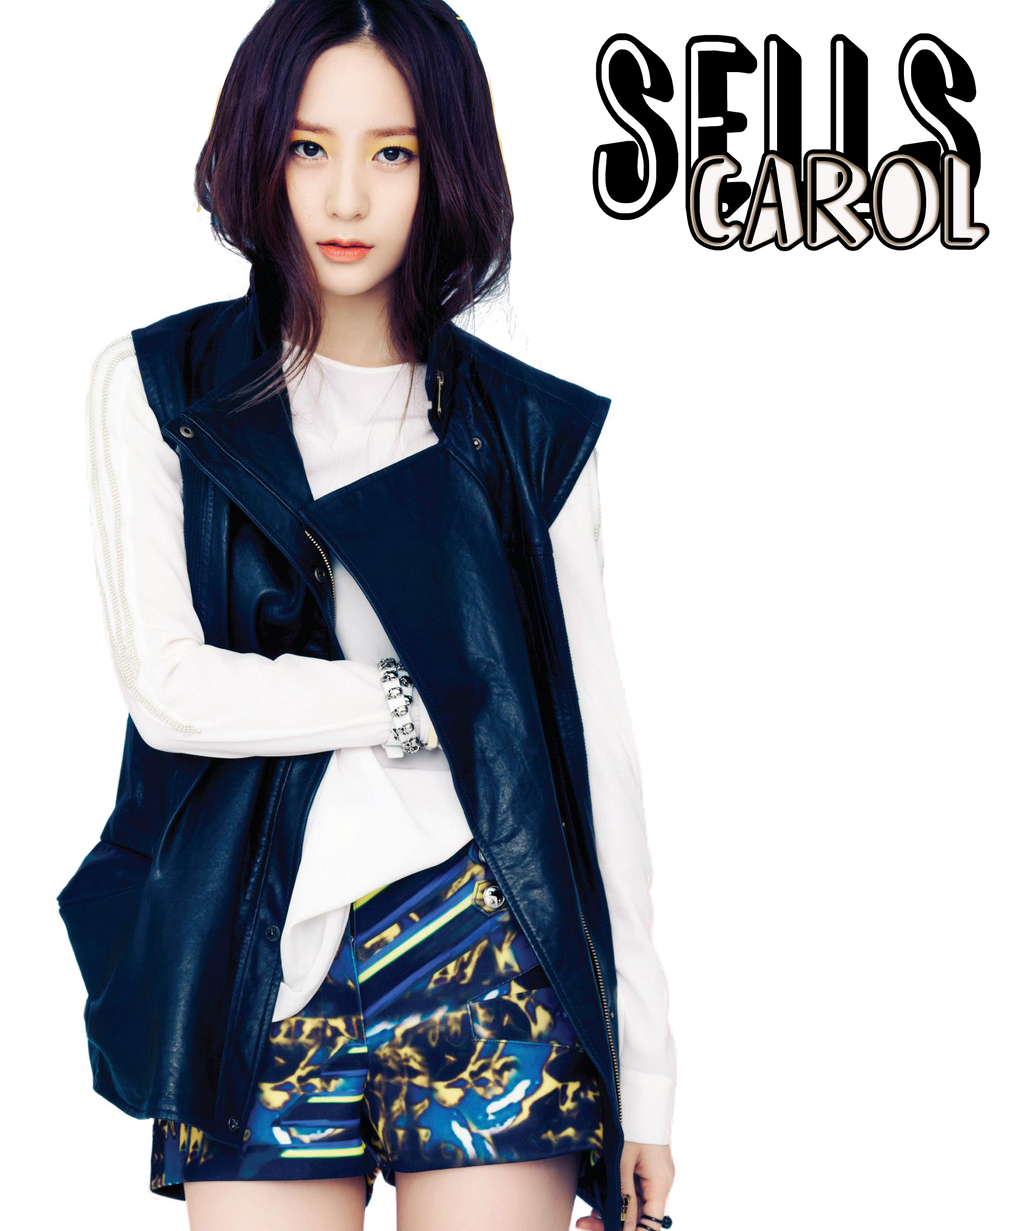 Krystal Jung [f(x)] render [PNG] by Sellscarol on DeviantArt